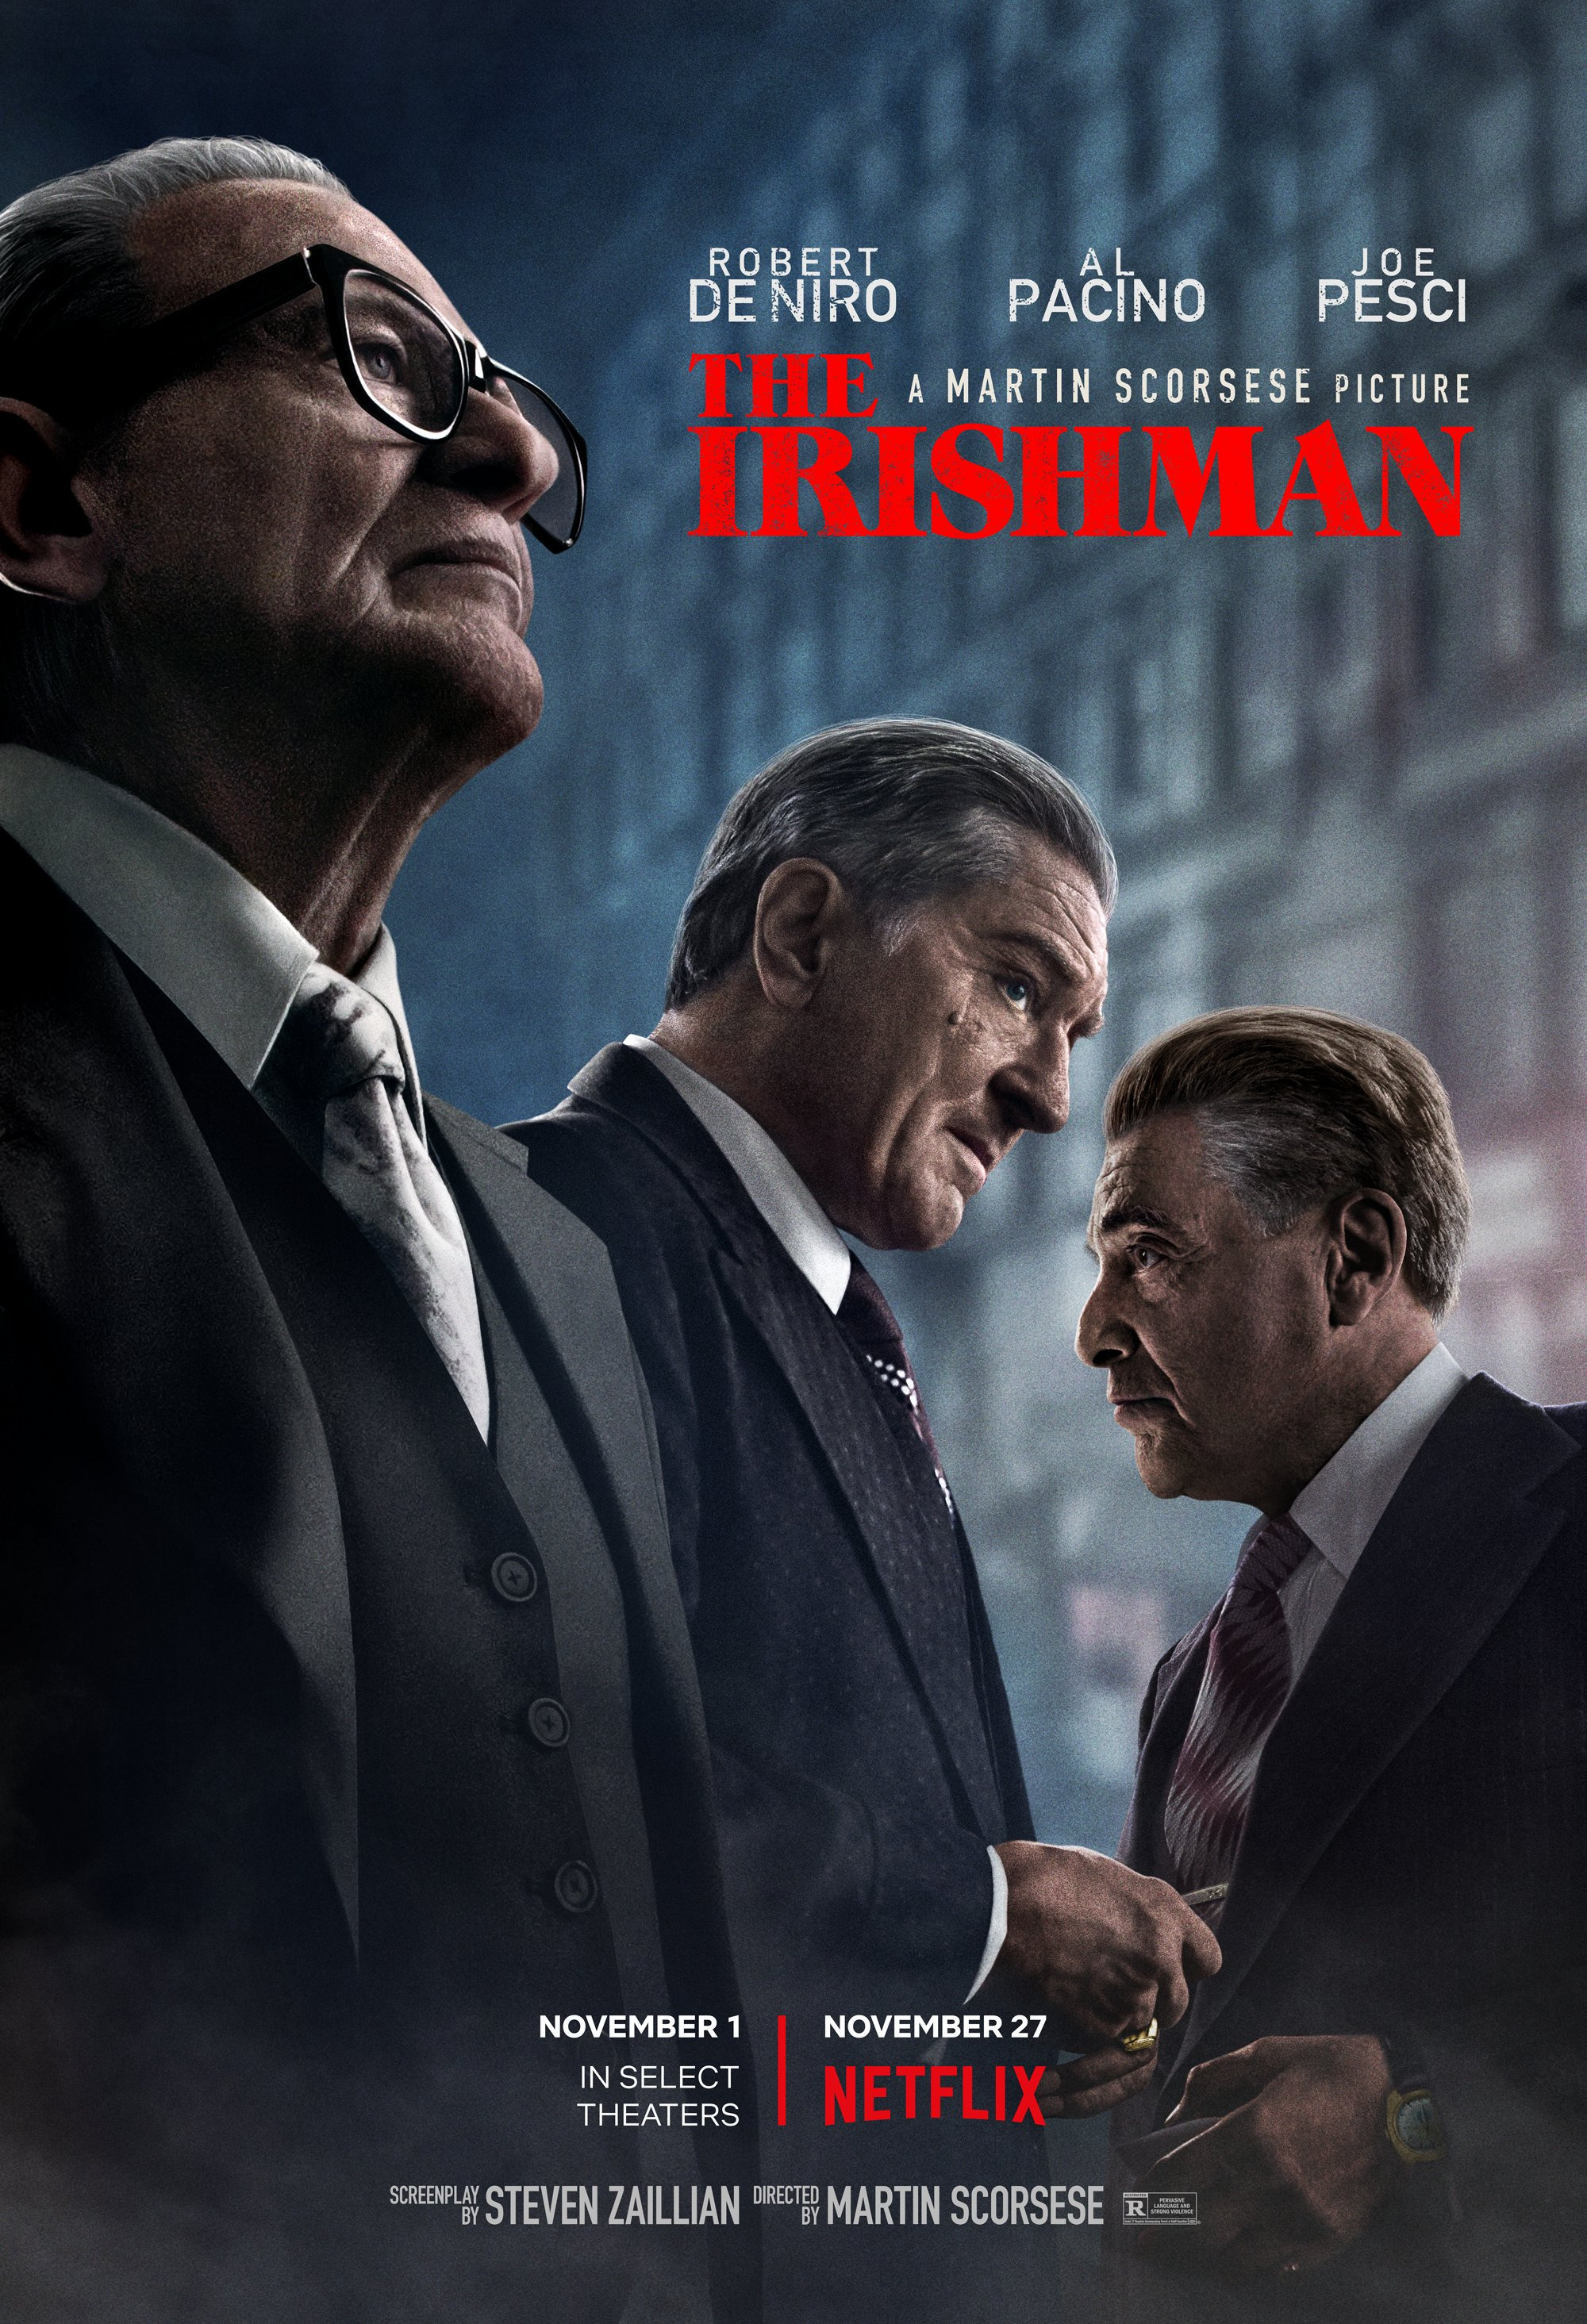 The Irishman film poster